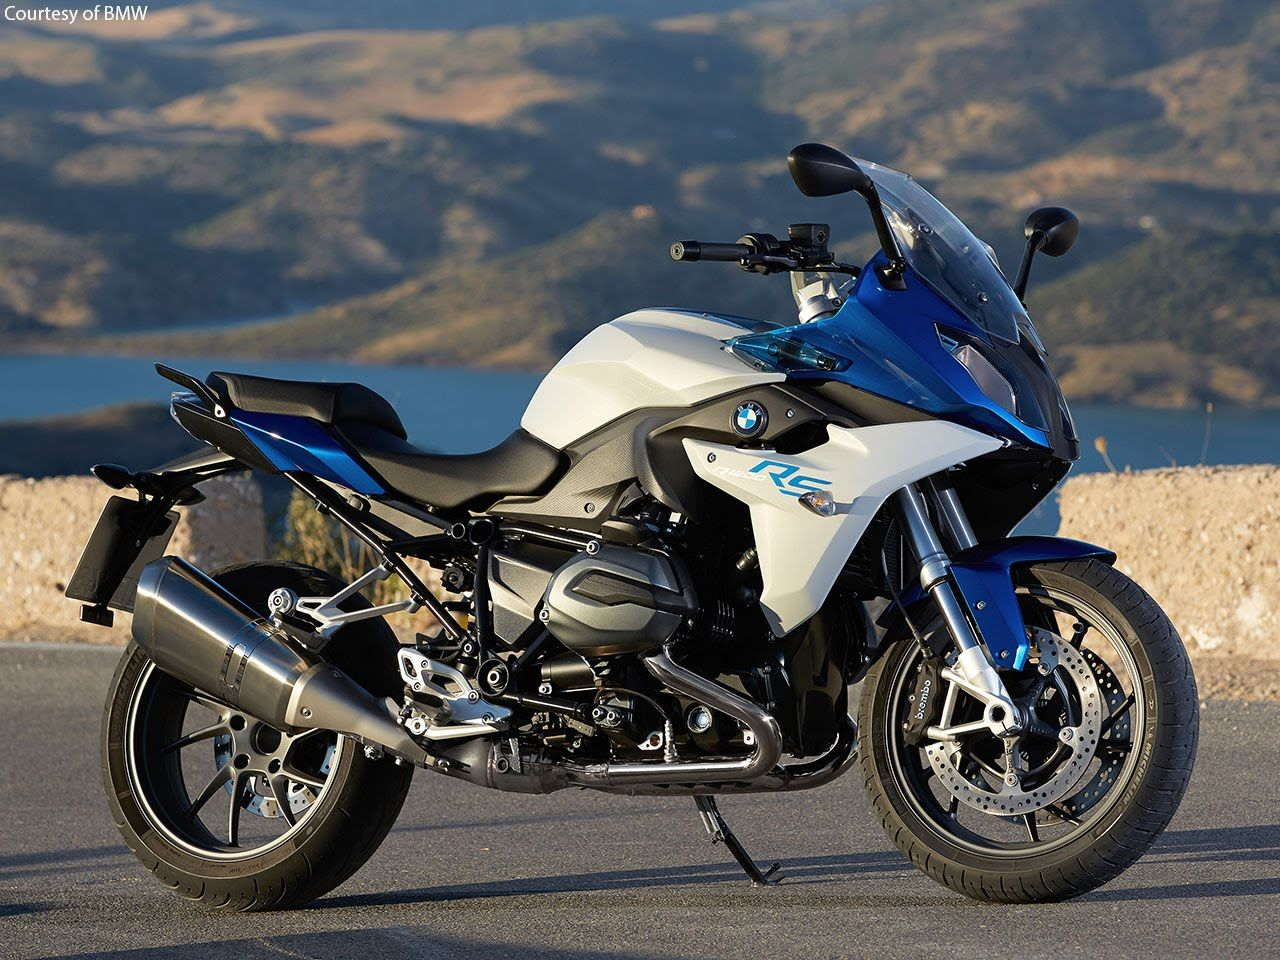 2016 Bmw R1200rs Ride Review And Walk Around Em 2020 Gran Turismo Auto Motociclismo